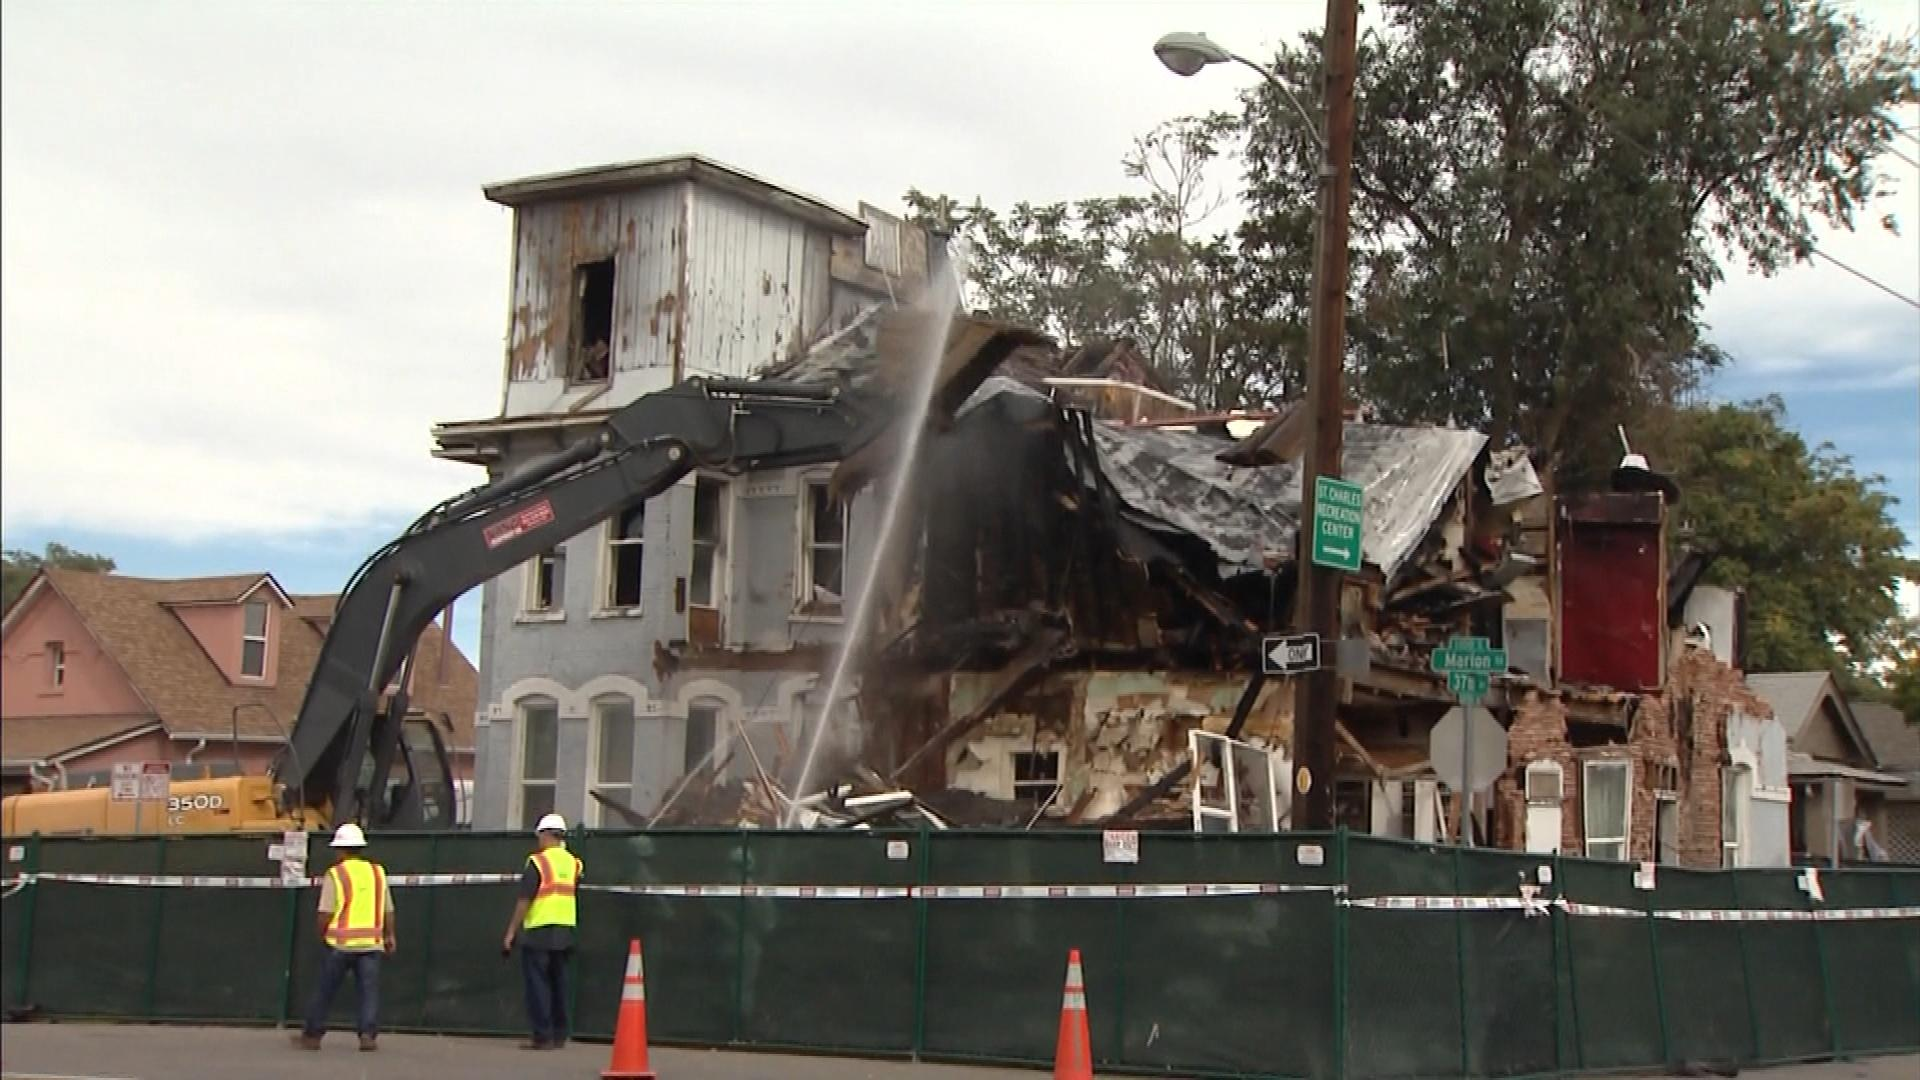 The building being demolished on Wednesday (credit: CBS)